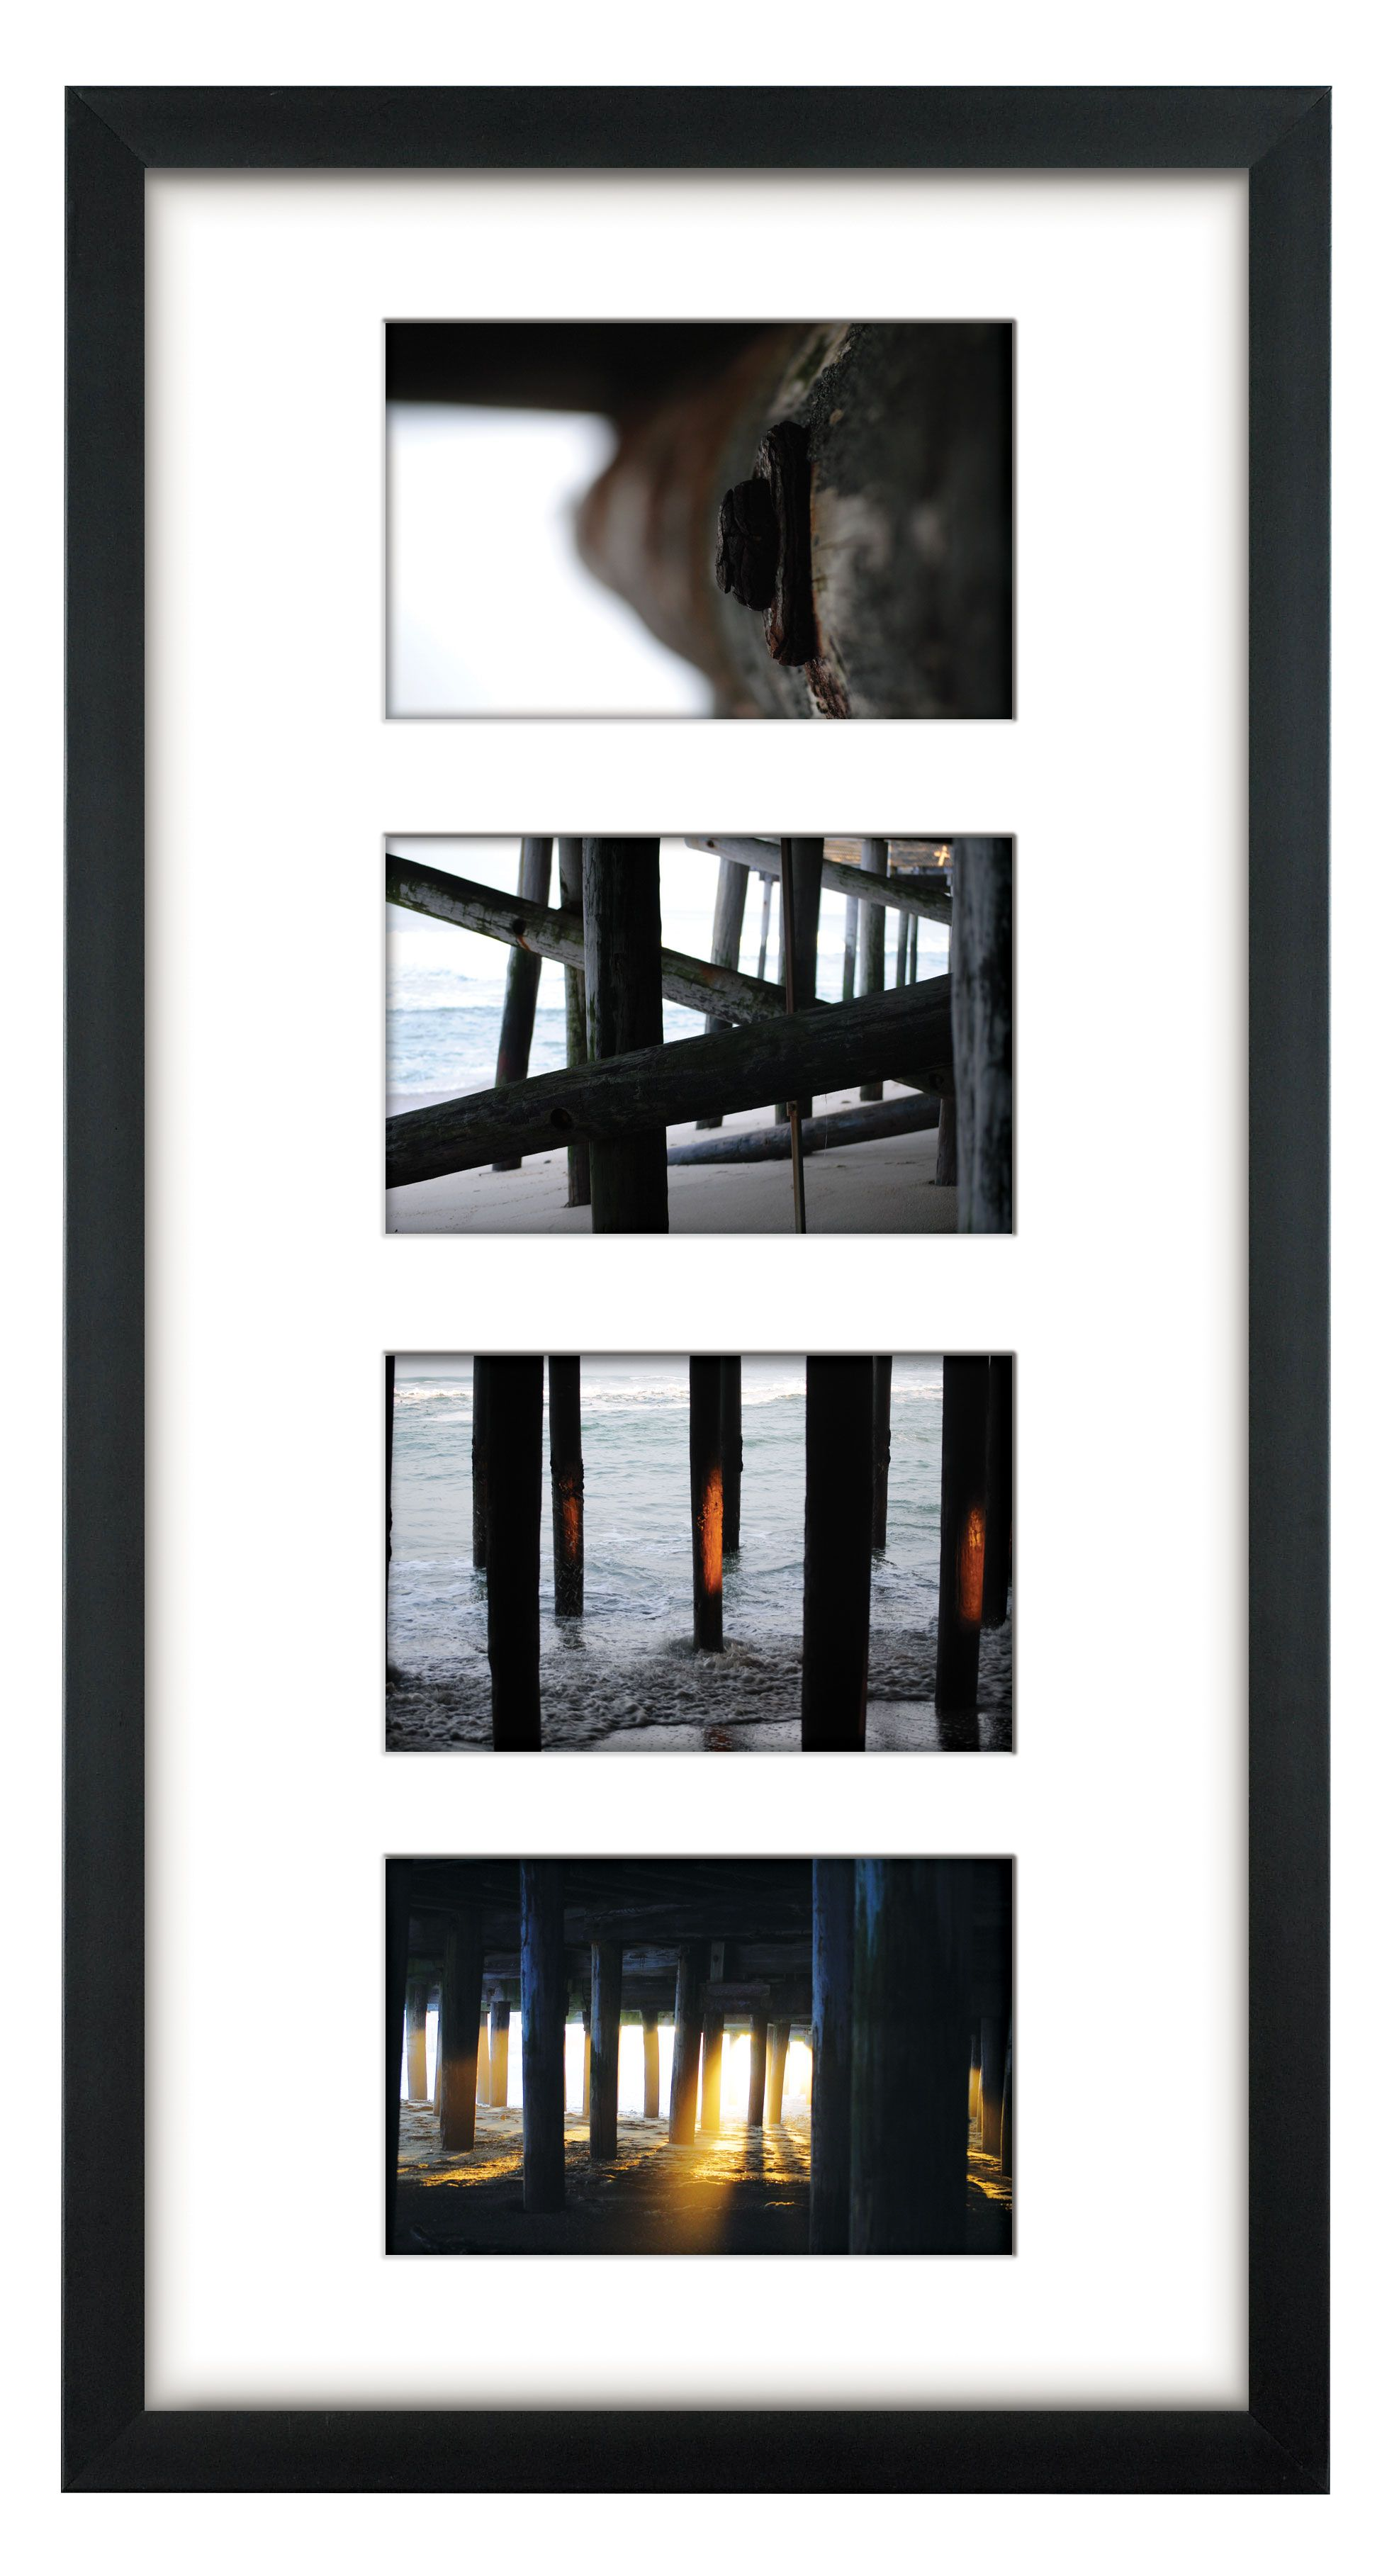 Nielsen Bainbridge Tribeca Frames Framed Photo Collage Frame Poster Frame